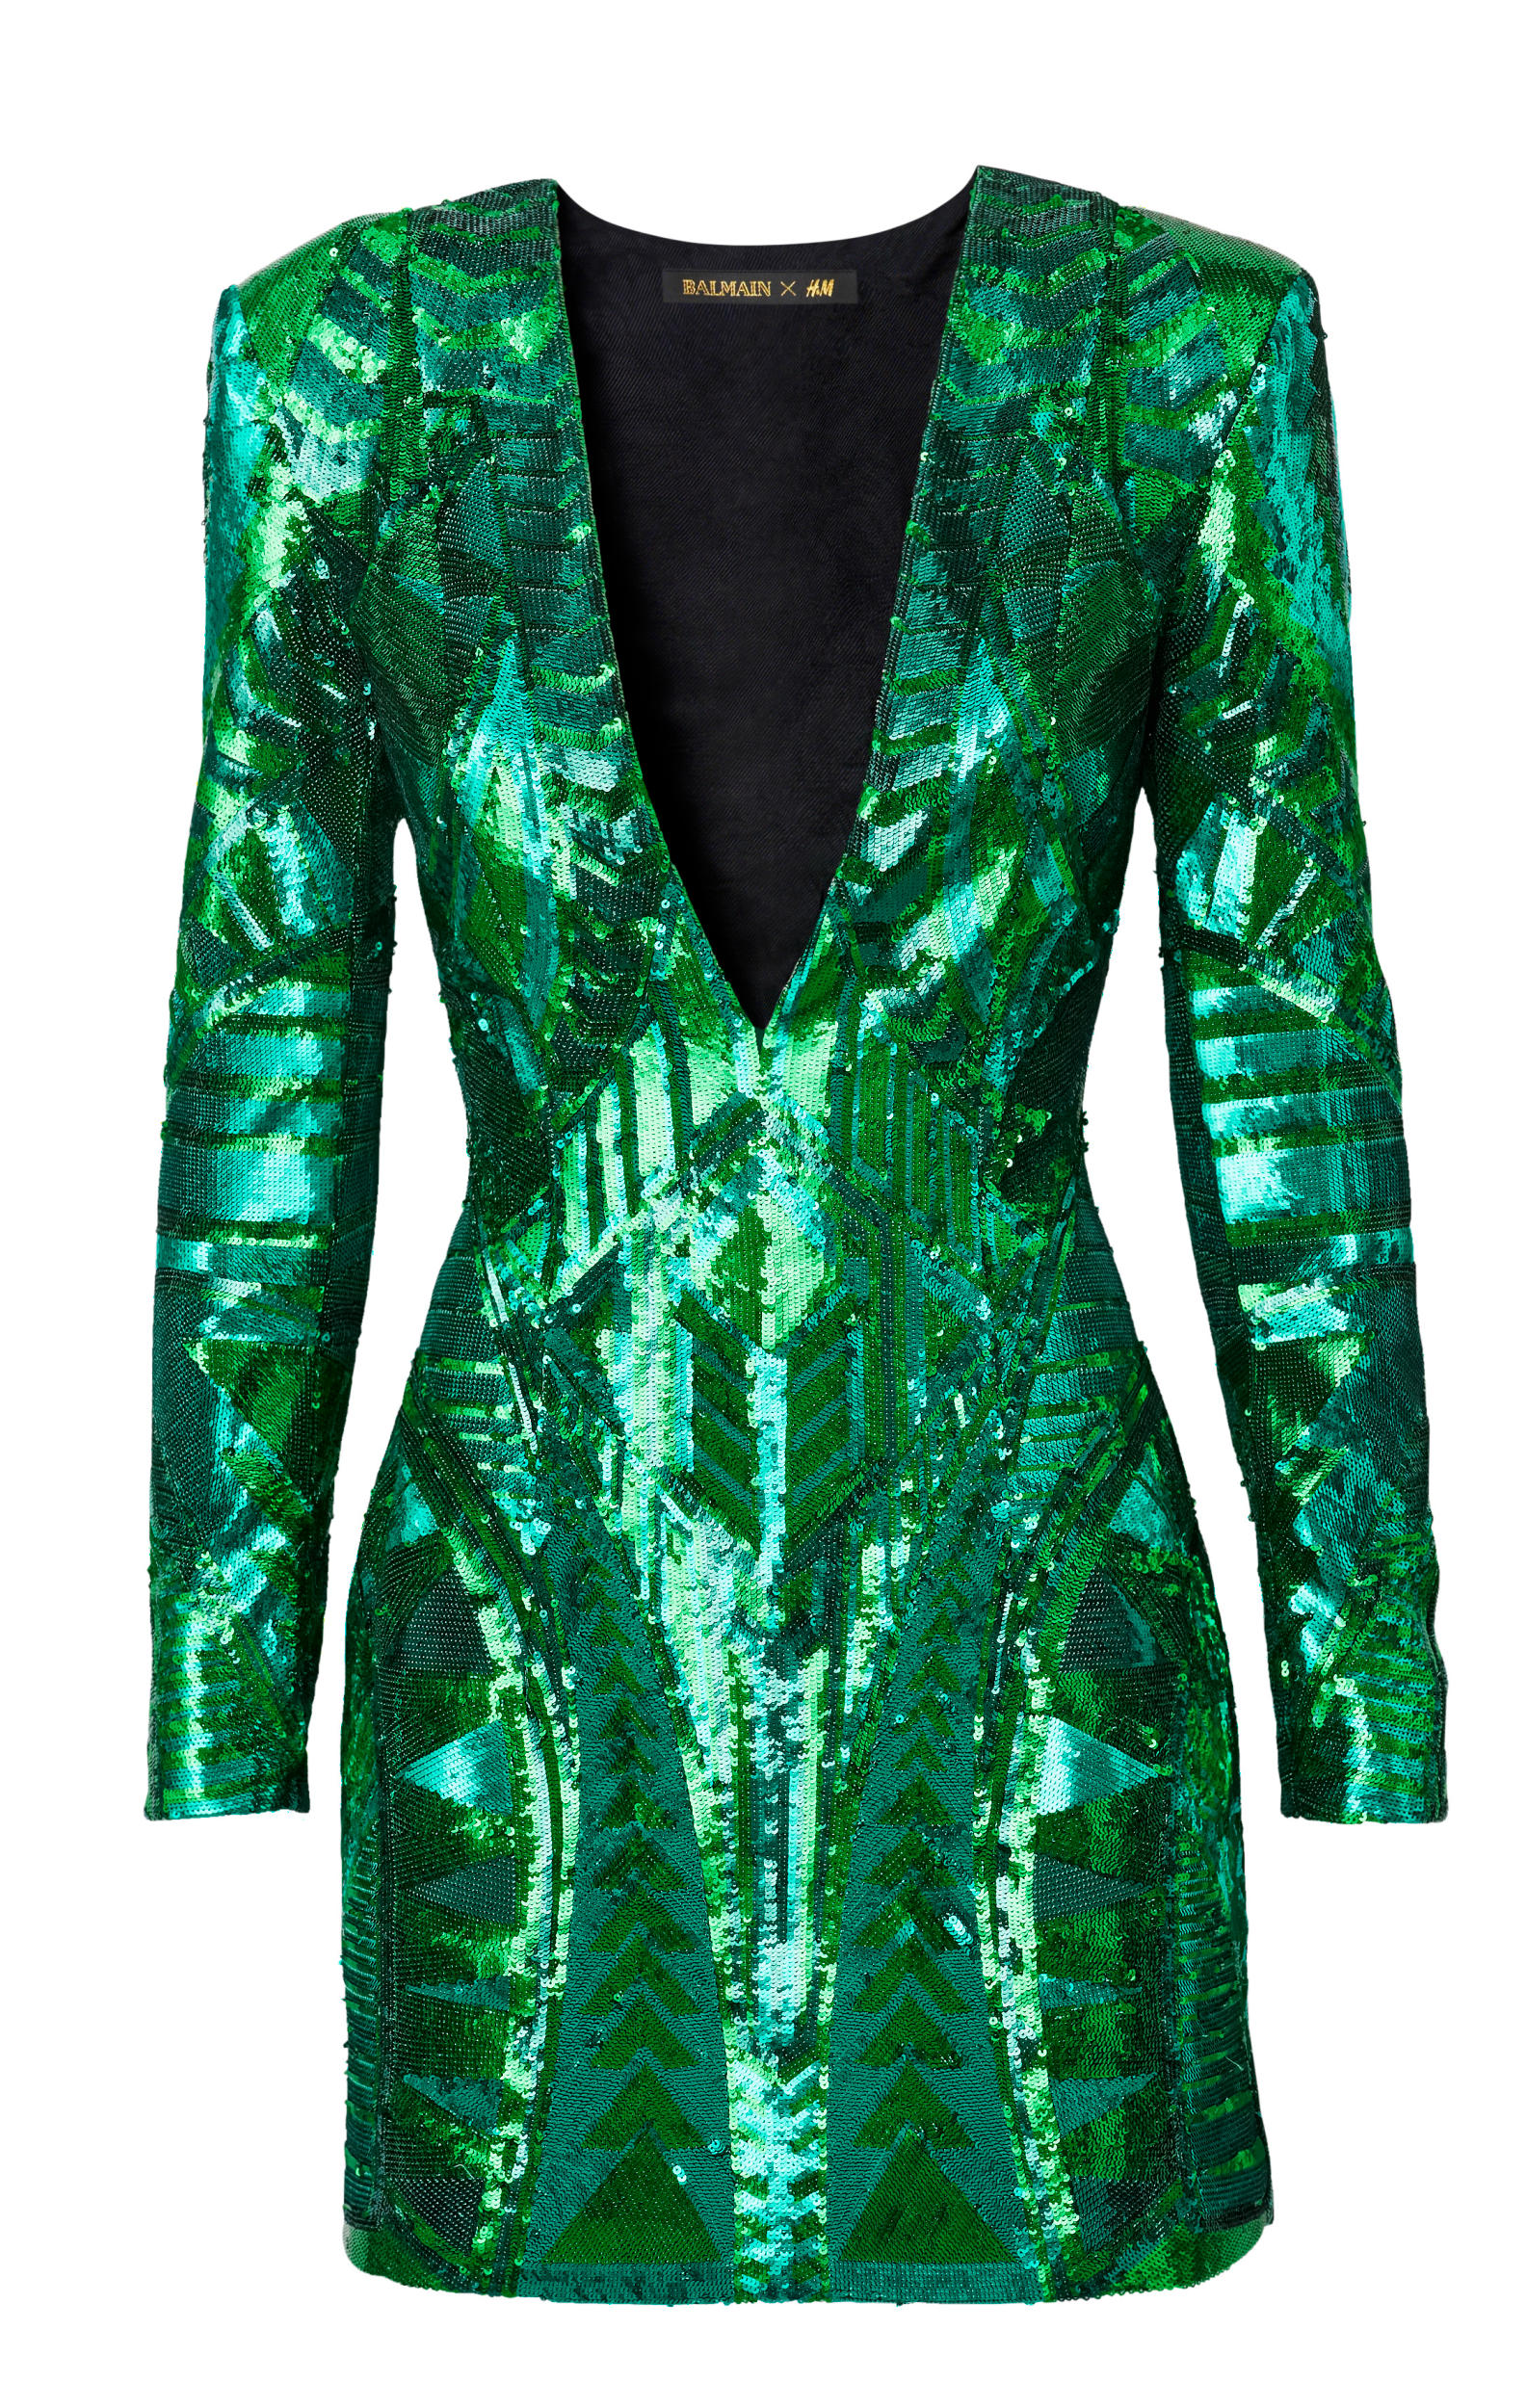 Balmain X H Amp M Metallic Green Dress What S Haute